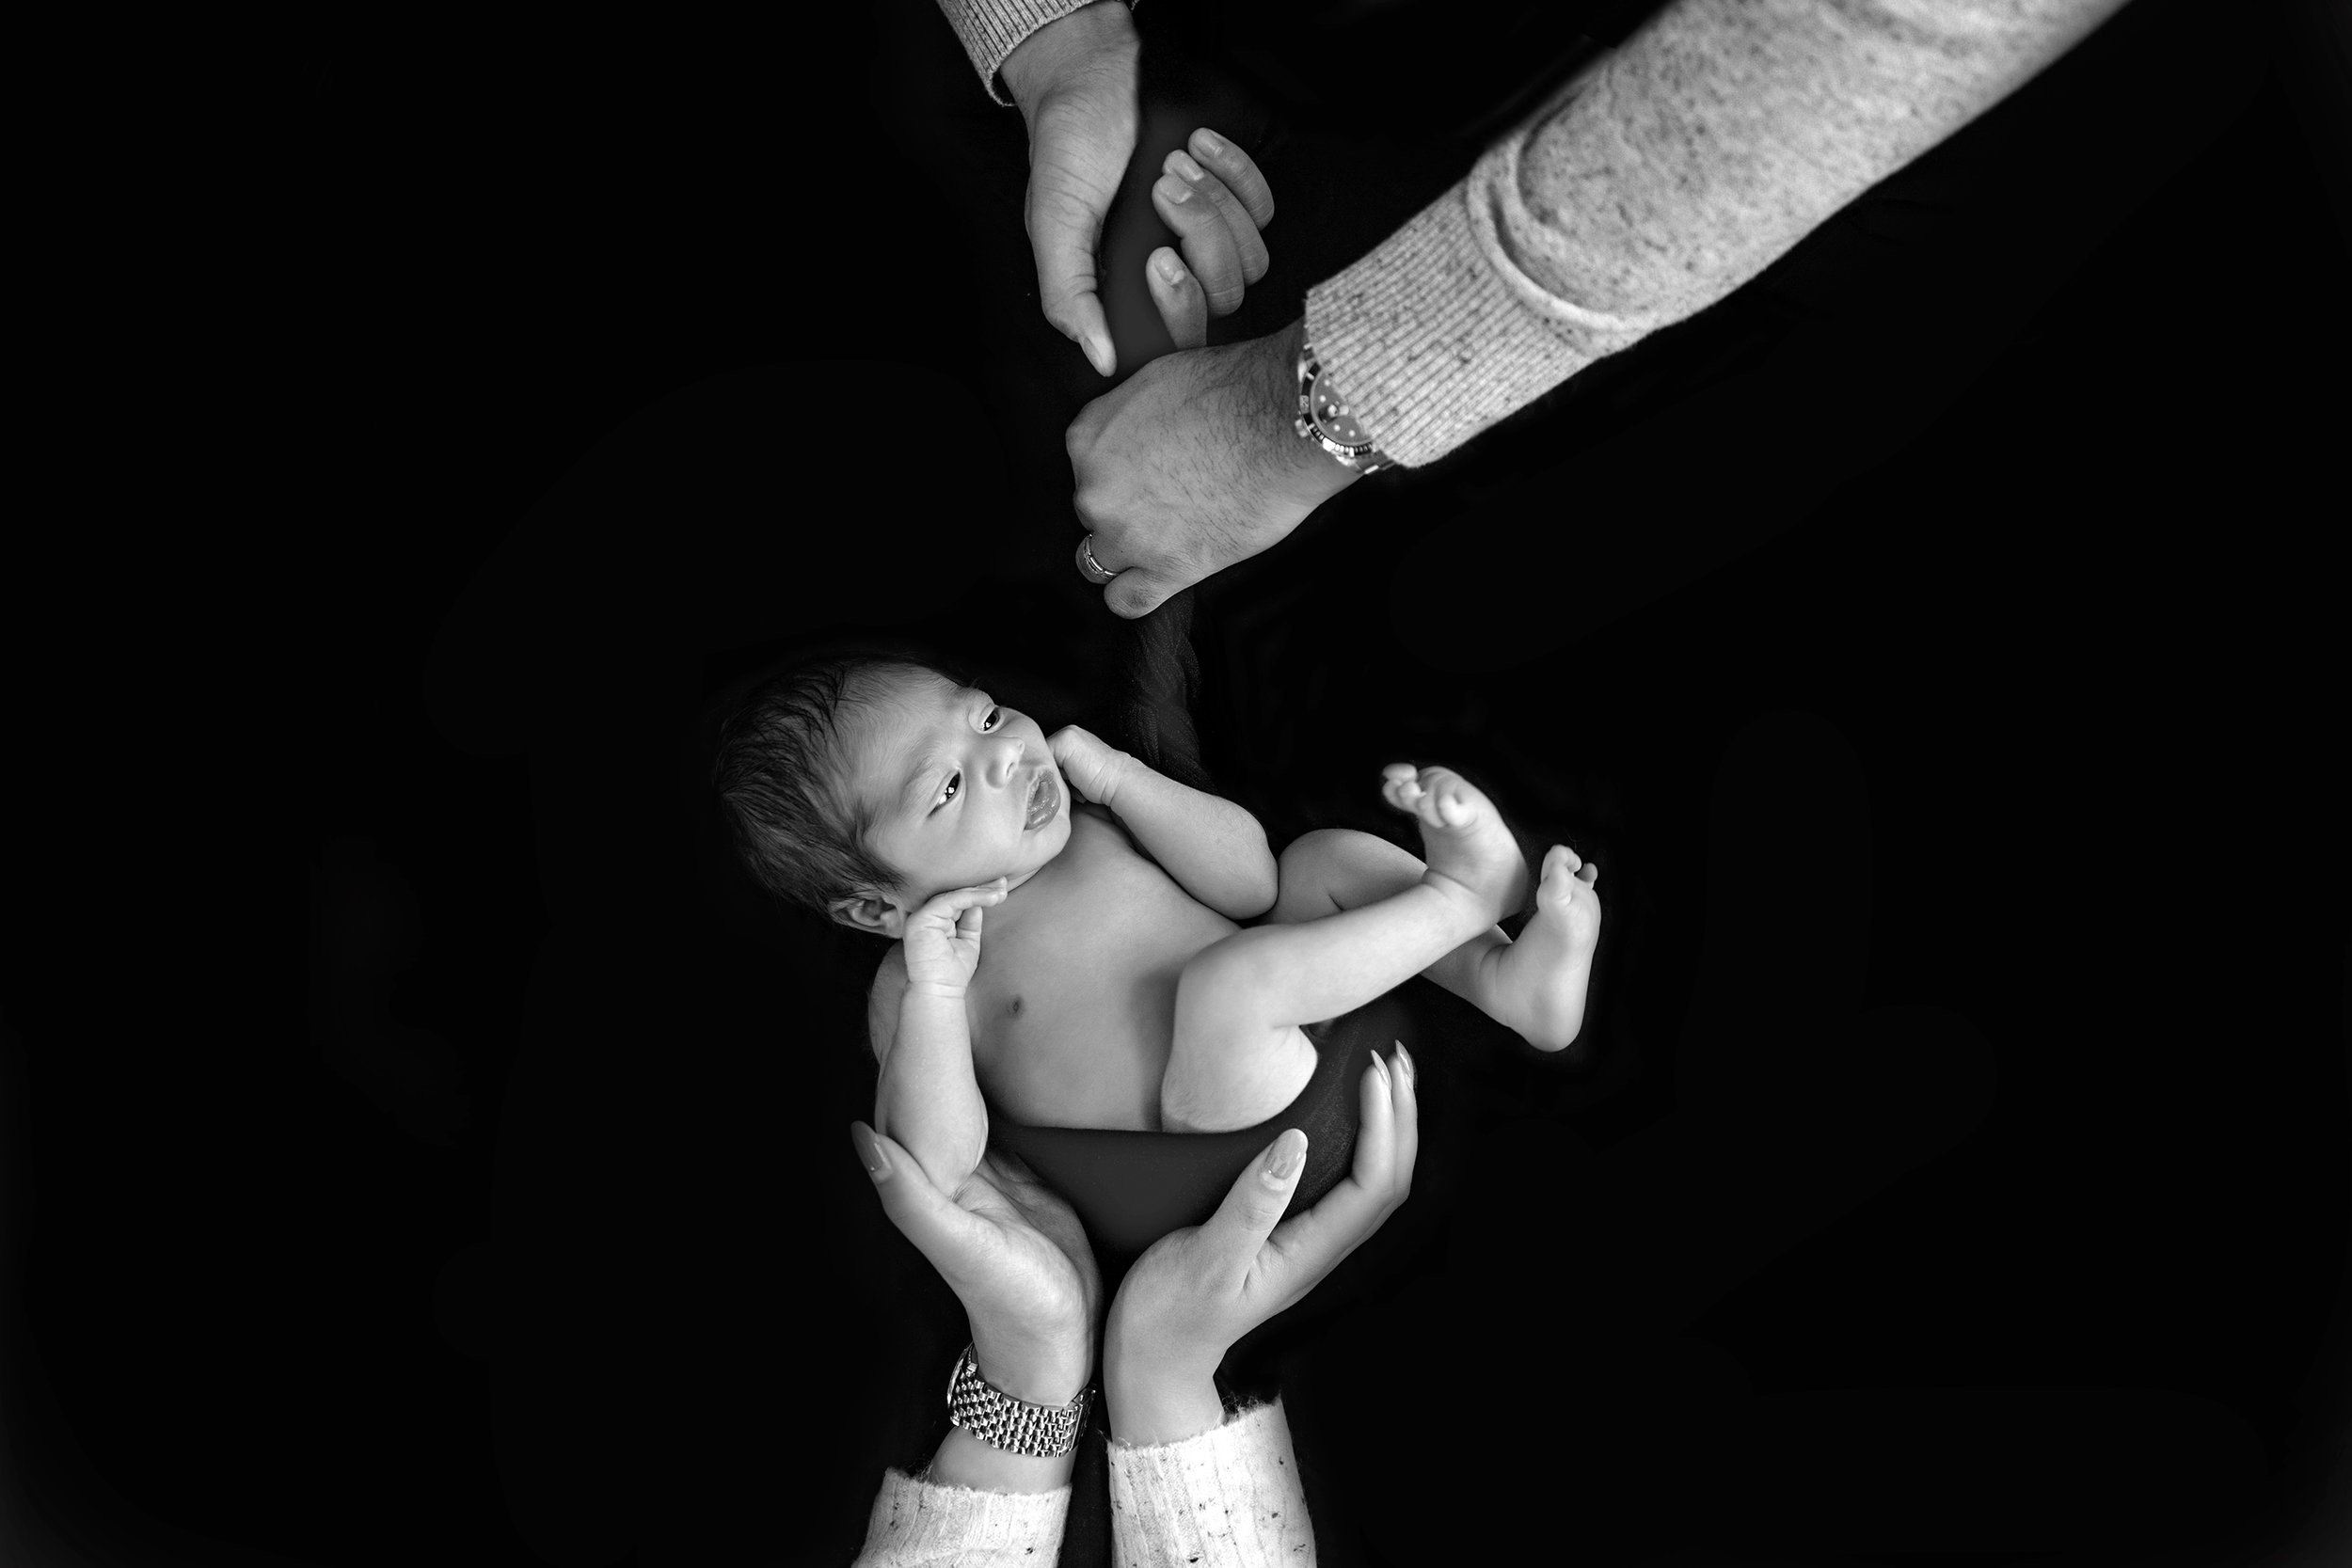 Safe in parents' hands. Baby boy is posed on a beanbag with a black backdrop and parents' hands are keeping him safe. Newborn photography ideas. Calgary baby and newborn photographer - Milashka Photography